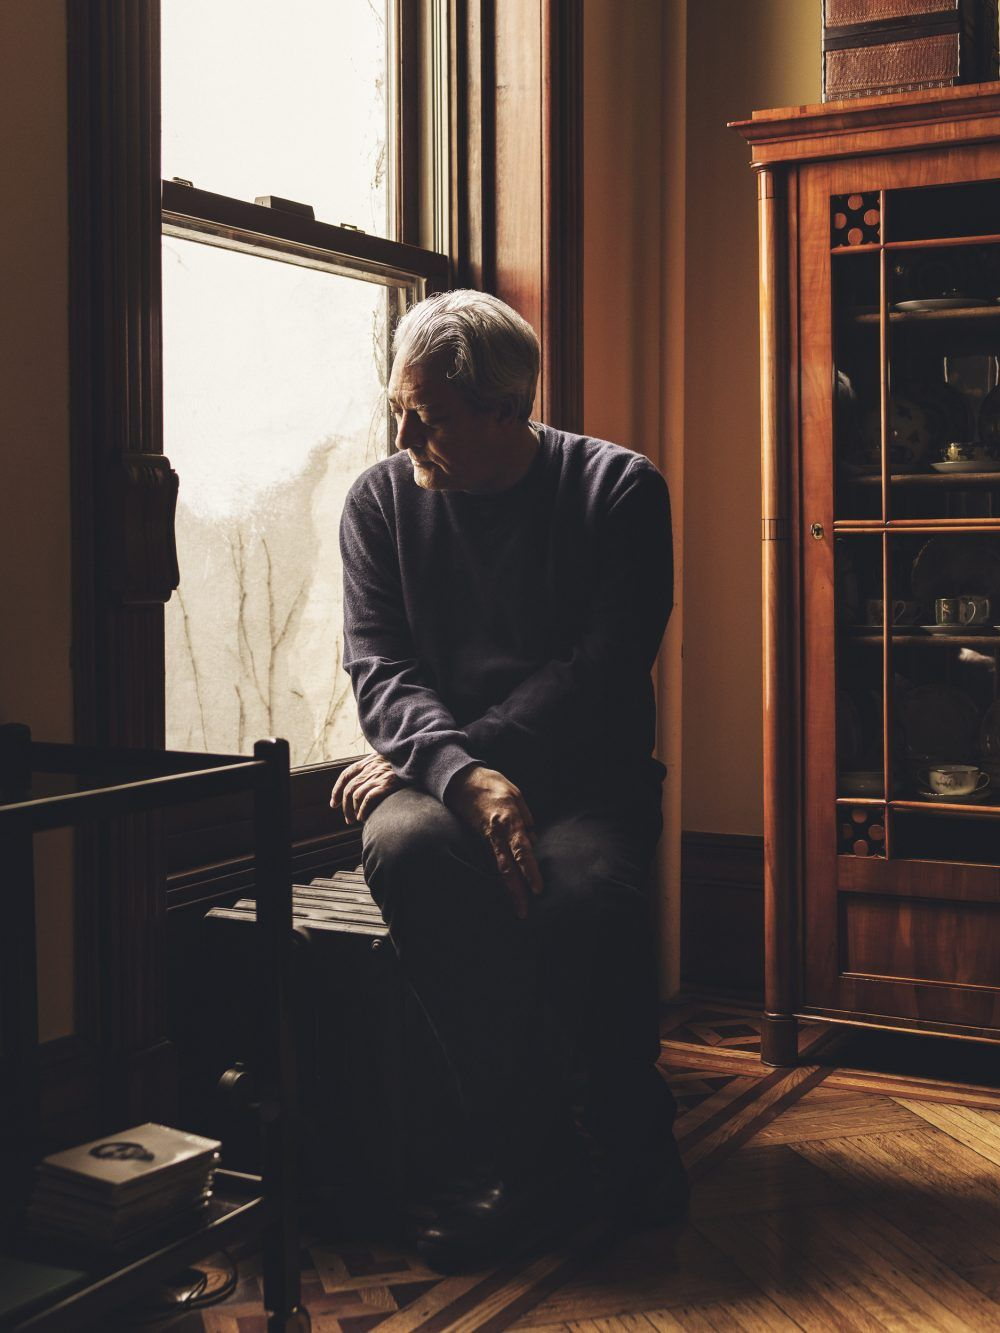 Dustin Aksland c/oGIANT ARTISTS captured quiet moments with author Paul Auster in his Brooklyn home for the latest issue of Lufthansa Magazine